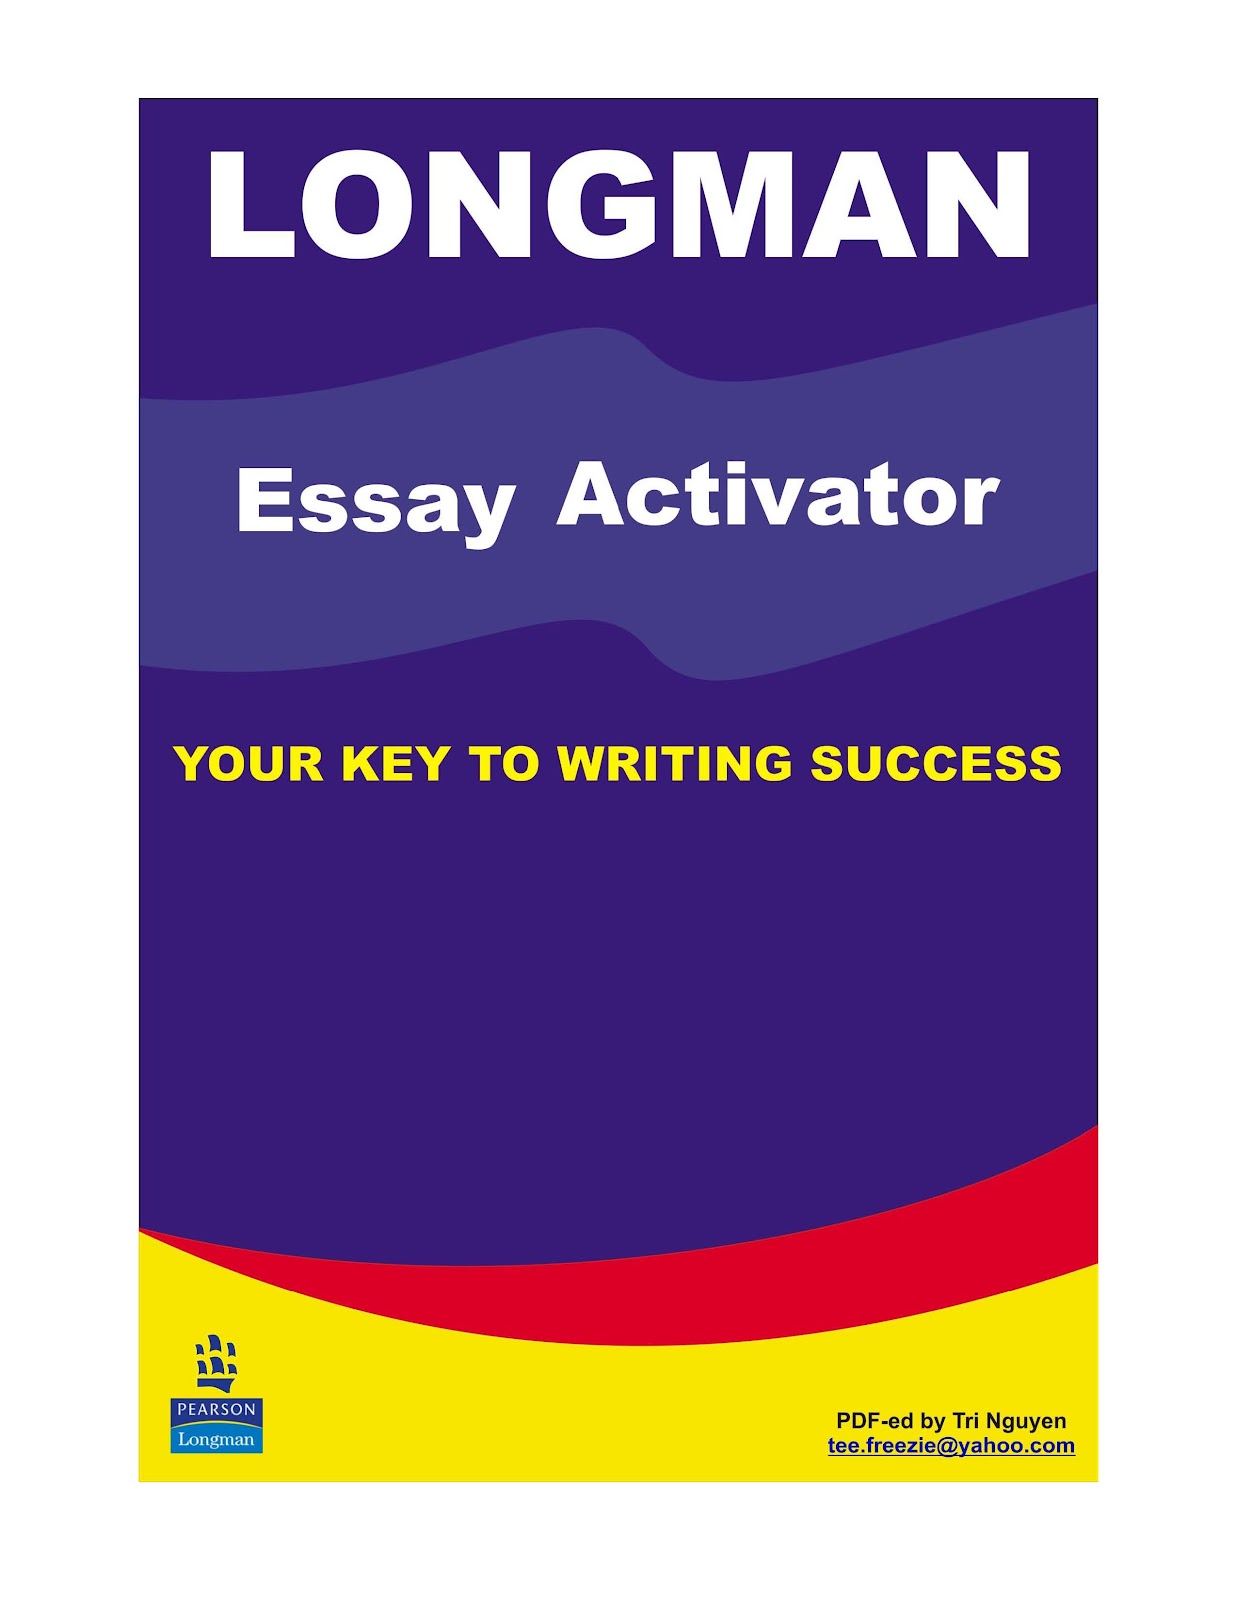 longman essay A step-by-step approach guides students through the writing process, from pre- writing to revision c.